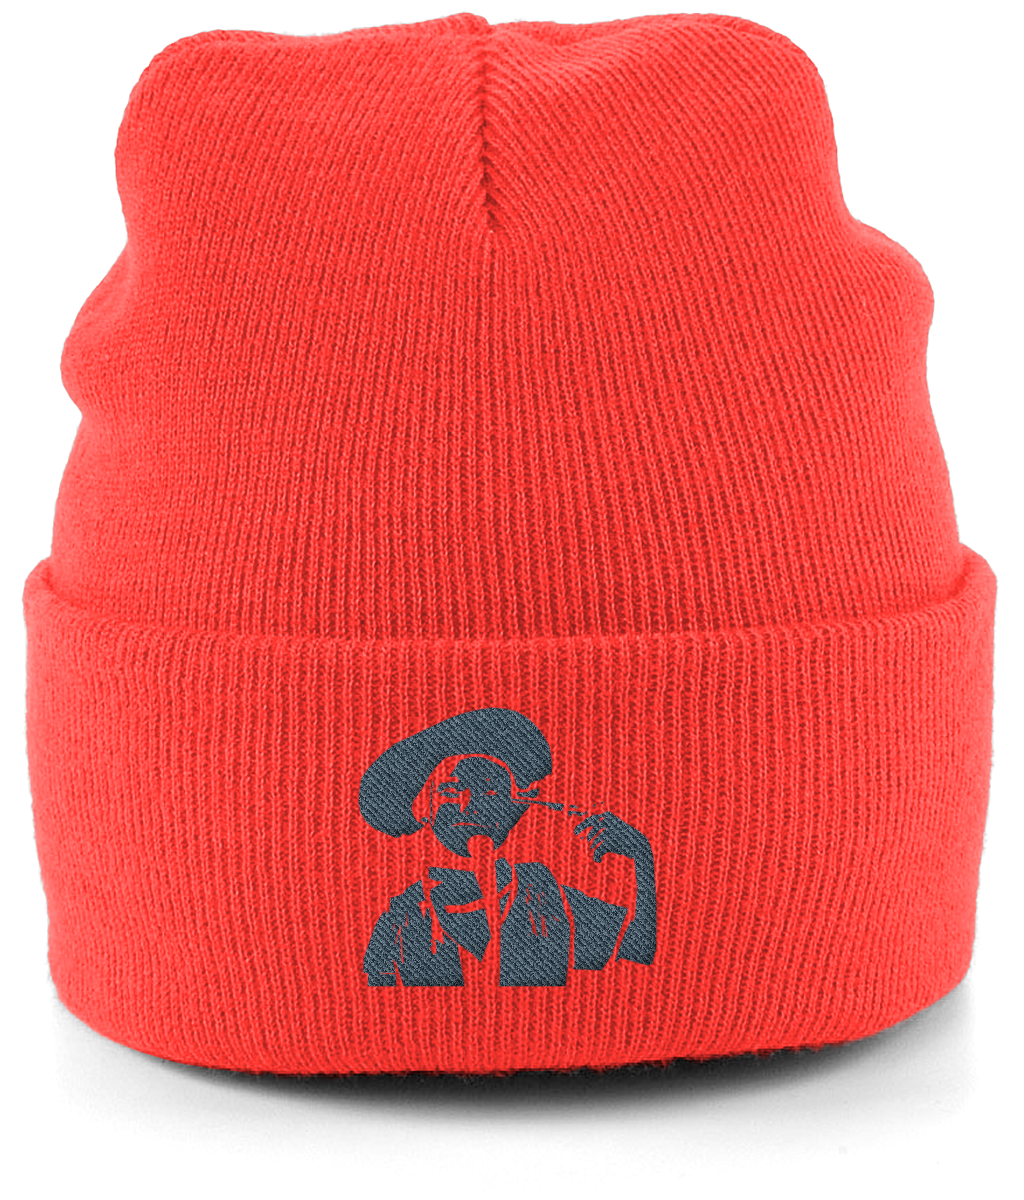 Unisex Cuffed Embroidered Stand Cowboy Beanie